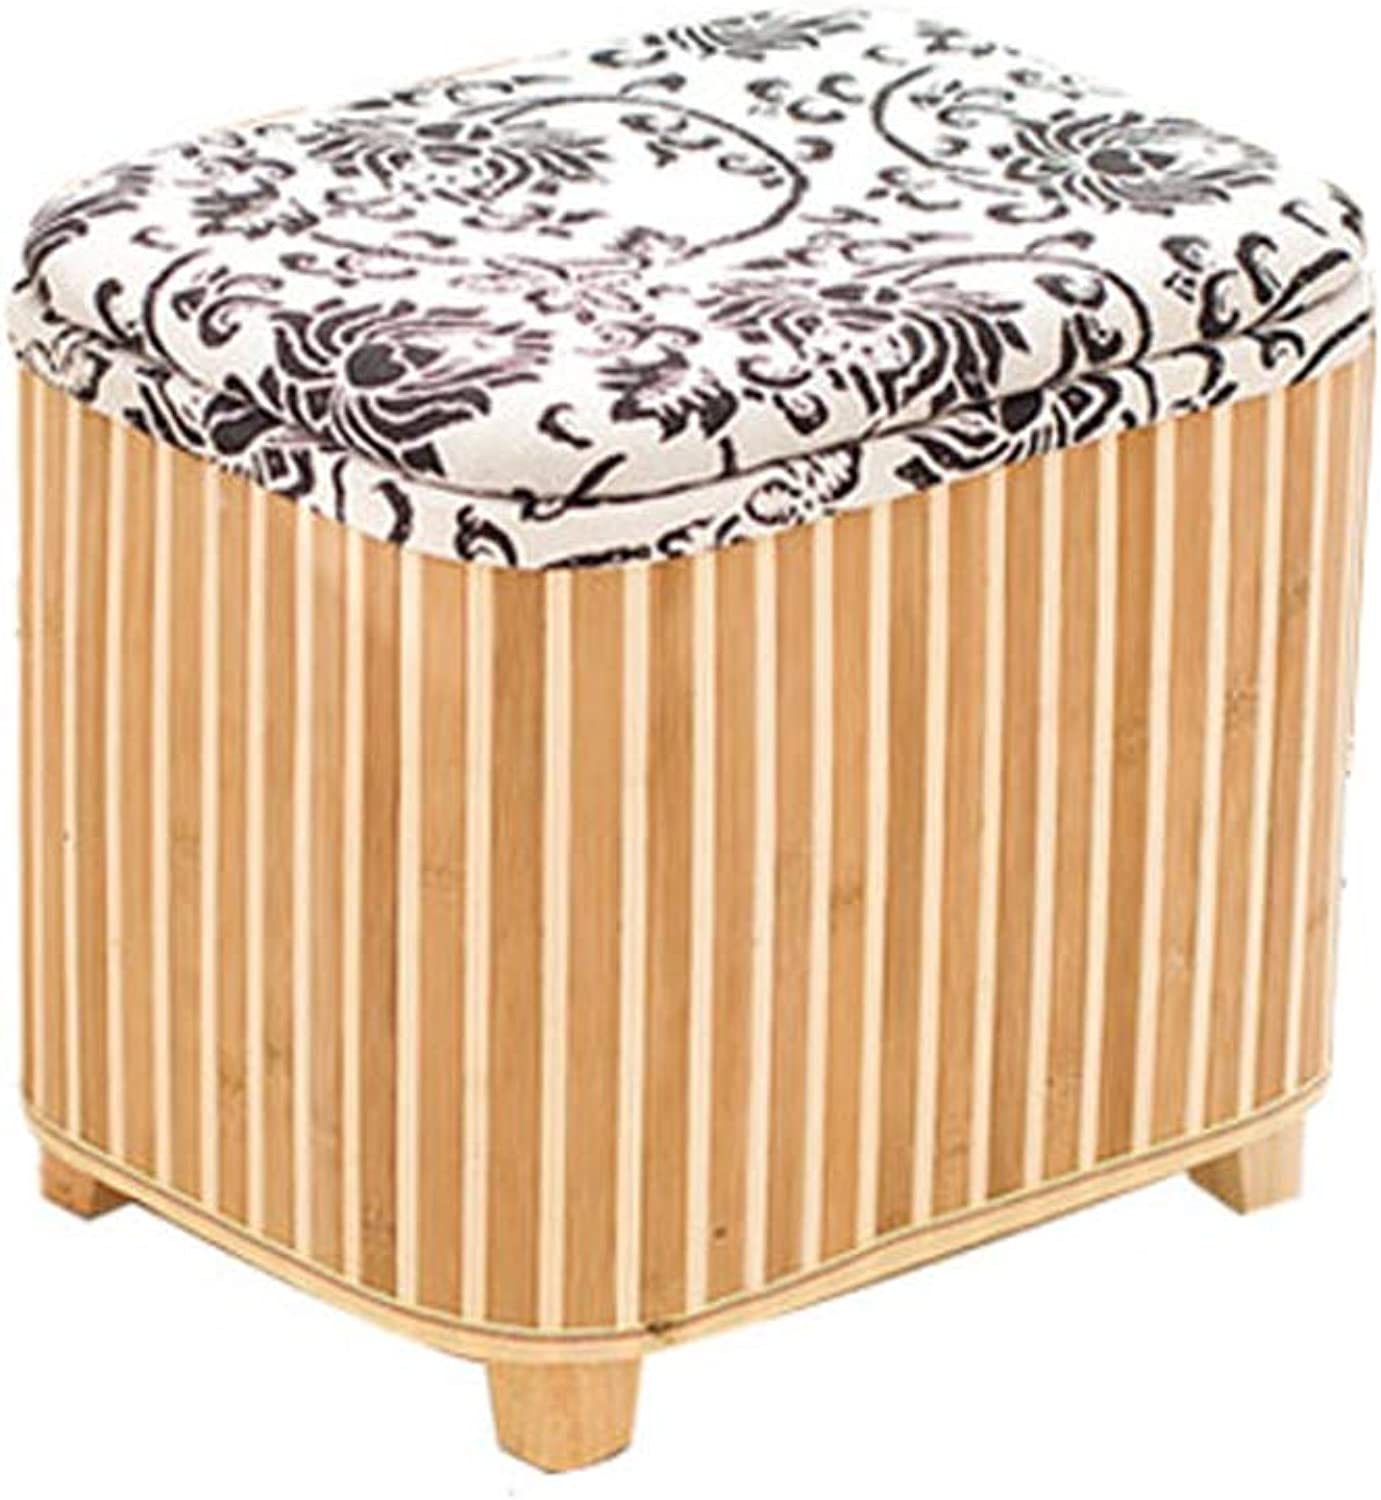 LifeX Nordic Style Flower greenical Stripes Bamboo Storage Stool Box Footstool Home Living Room Sofa Stool Hall Cotton Change shoes Bench Dressing Stool Seat Size Optional (color   S)